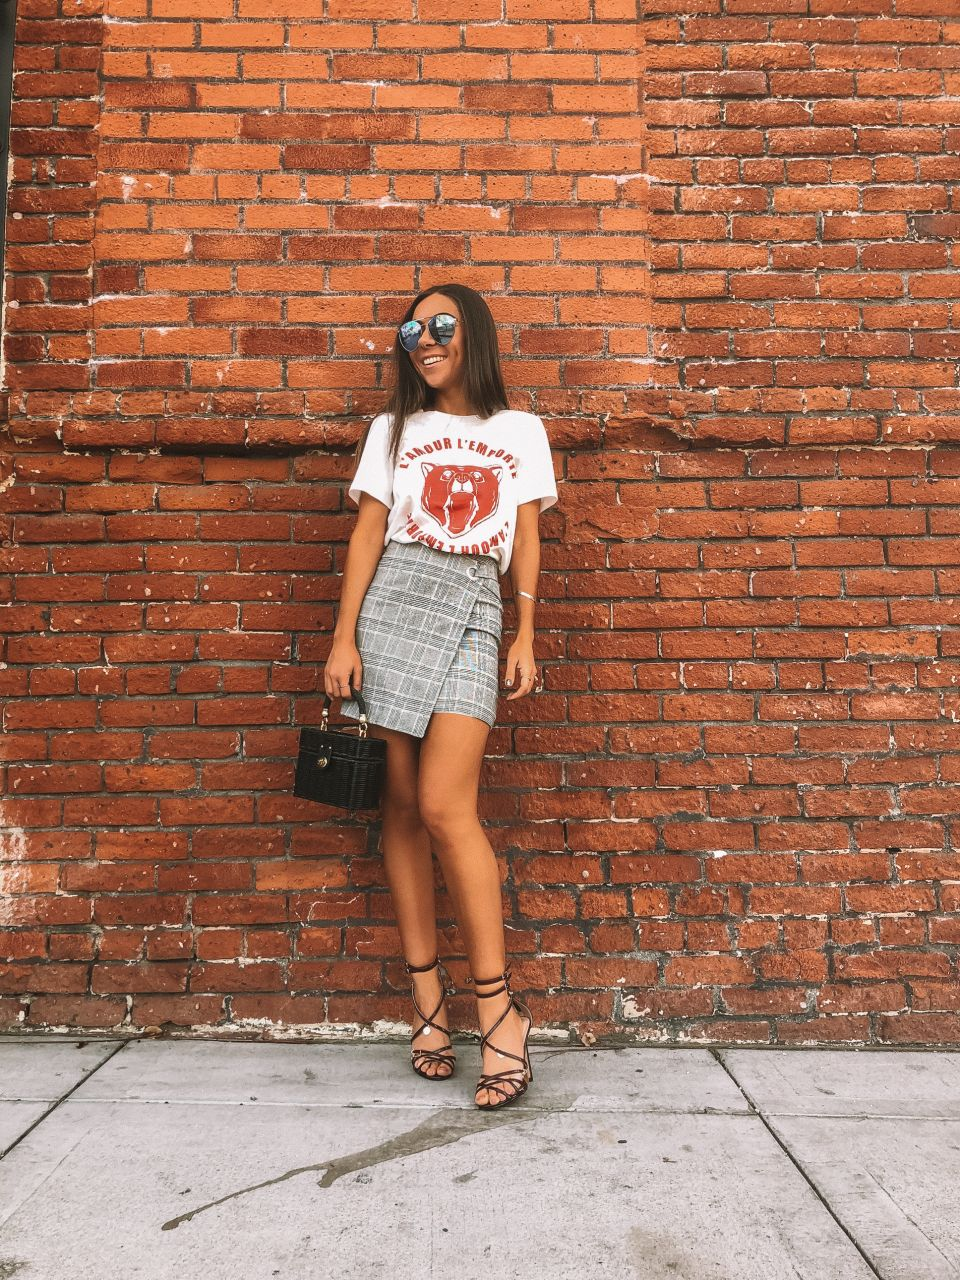 THE SECRET LIVES OF BLOGGERS: TIPS AND TRICKS FOR TINDER